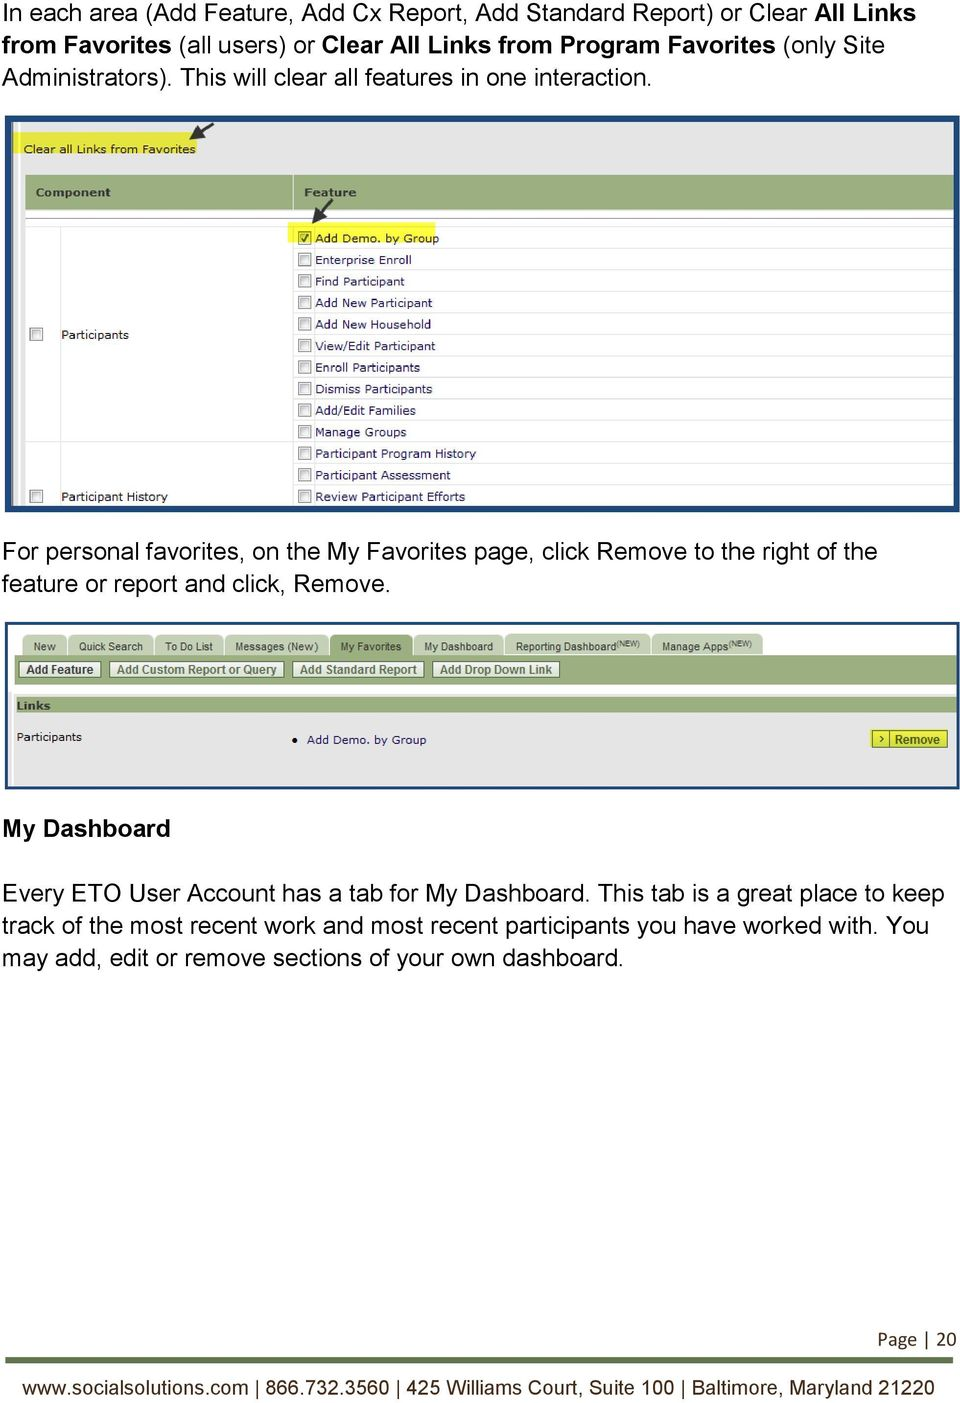 For personal favorites, on the My Favorites page, click Remove to the right of the feature or report and click, Remove.